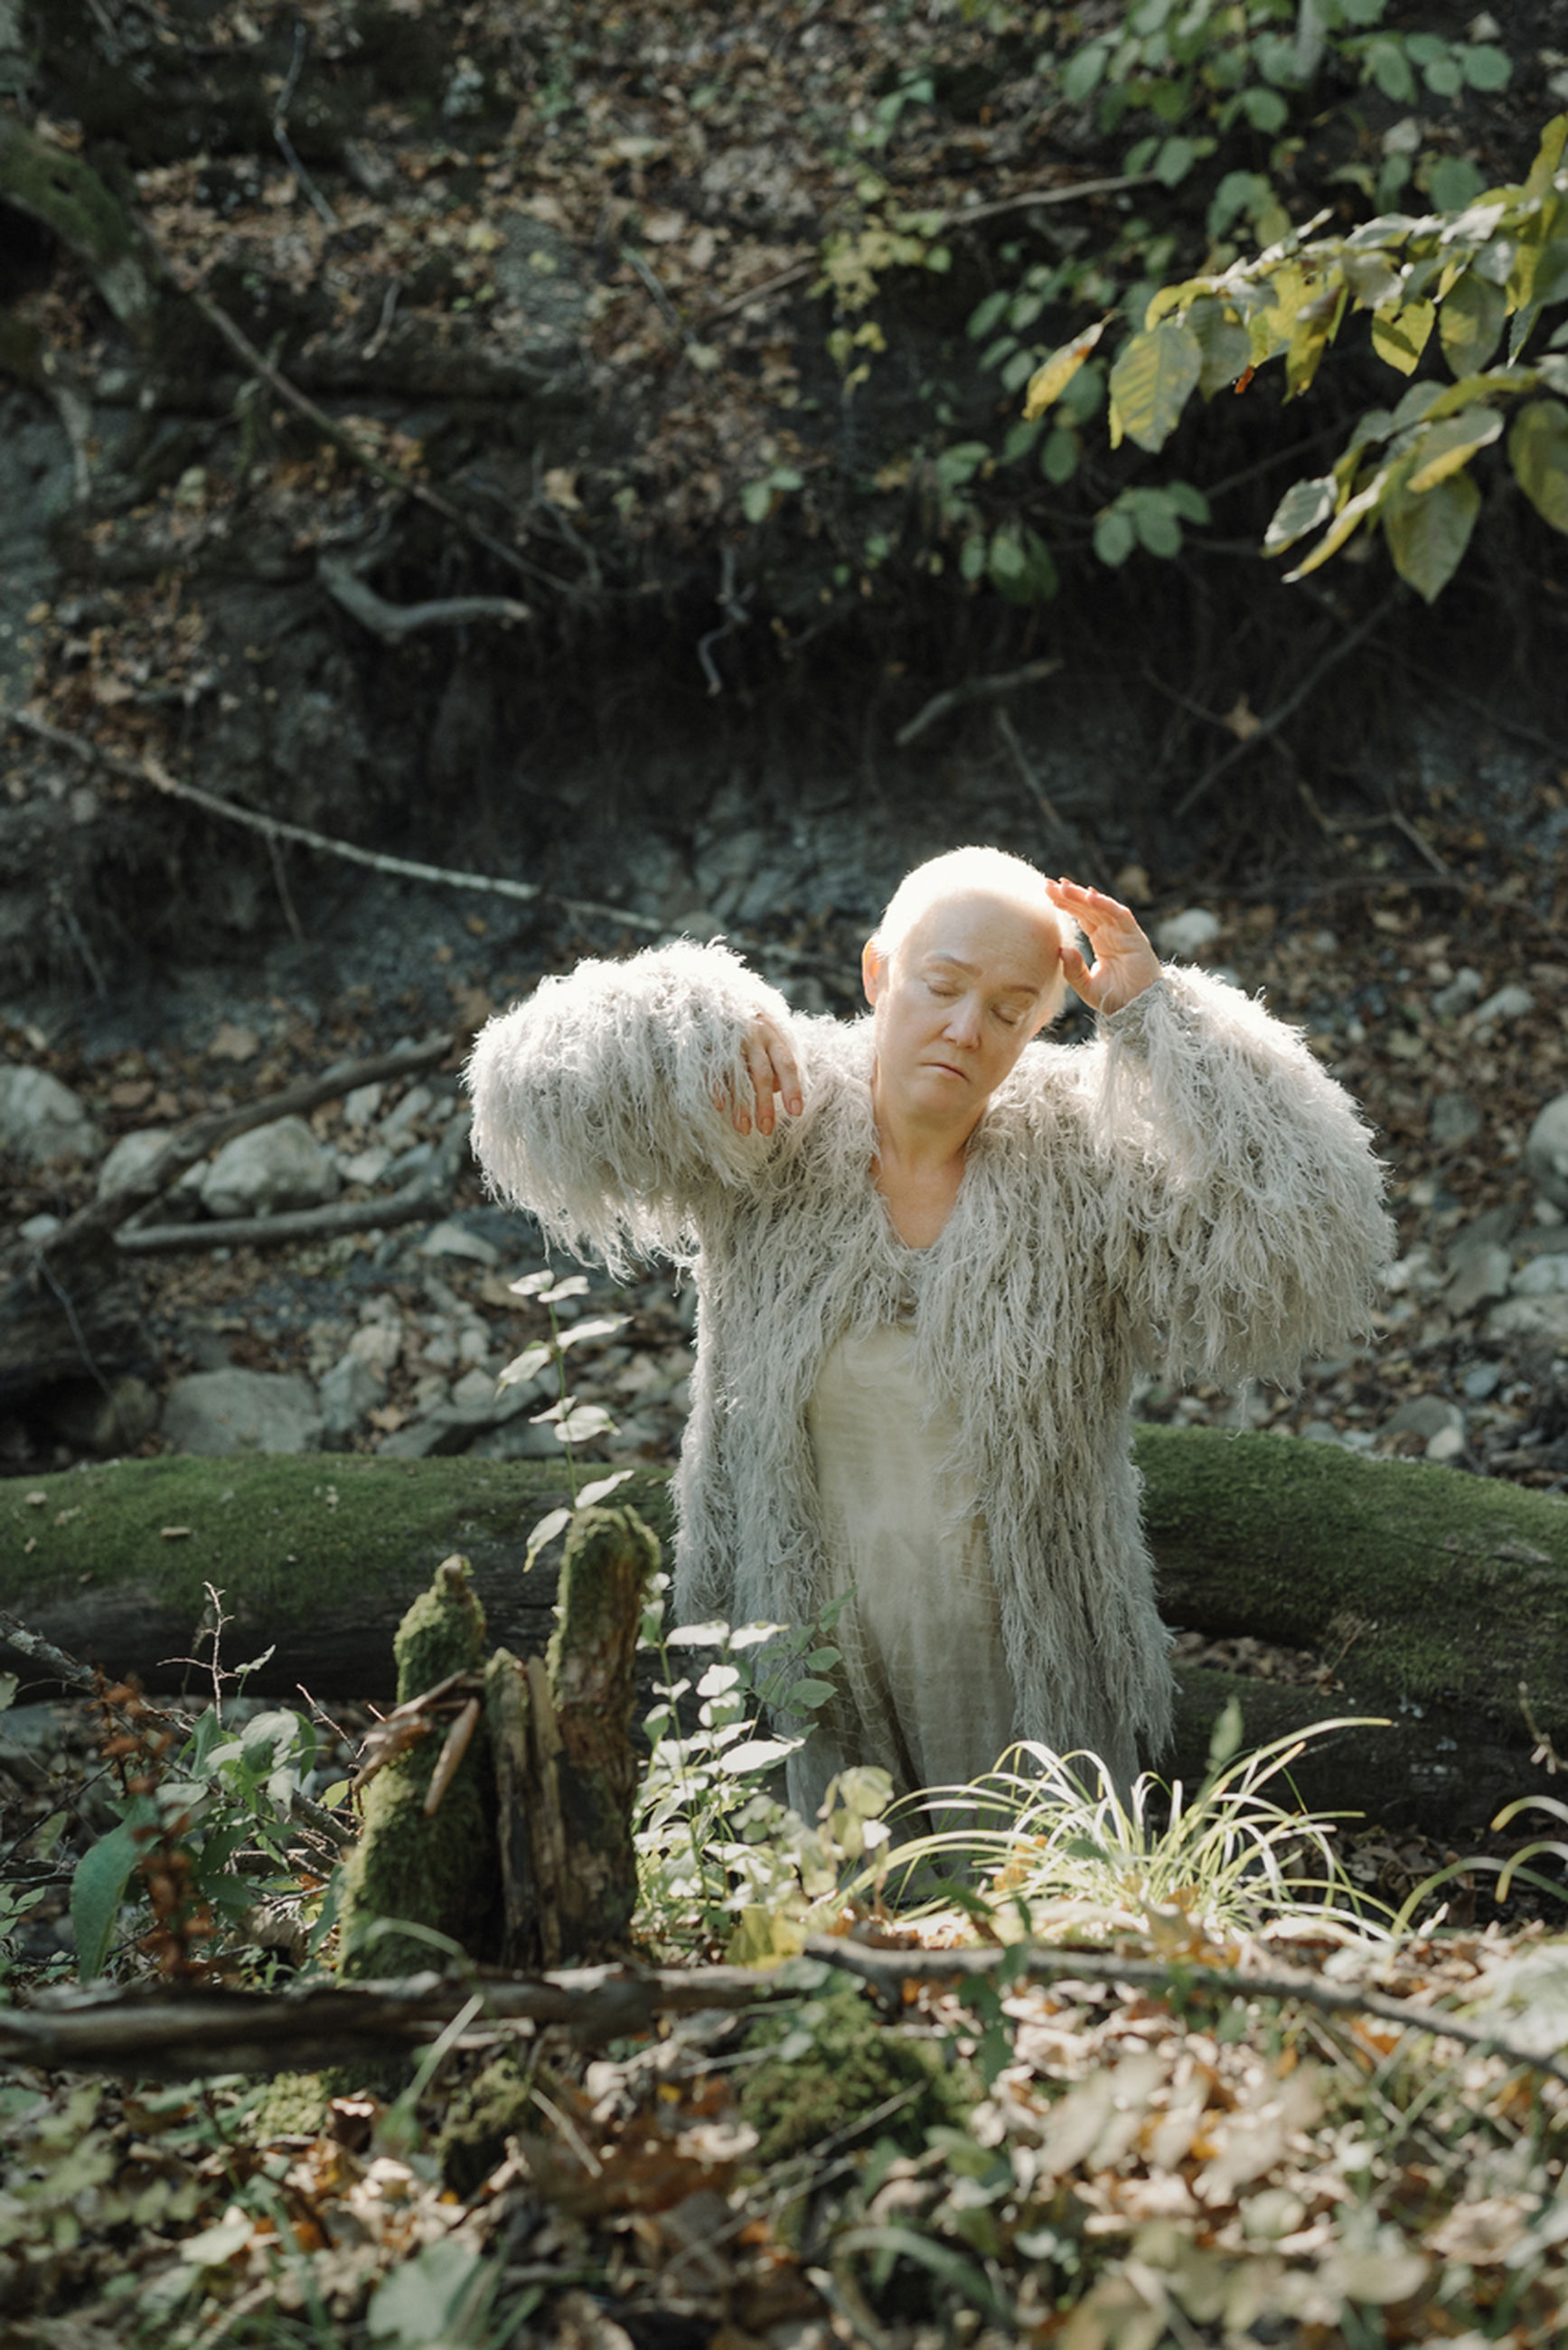 forest, tree, land, nature, plant, women, day, people, hair, adult, young adult, outdoors, plant part, leaf, hairstyle, blond hair, emotion, woodland, angel